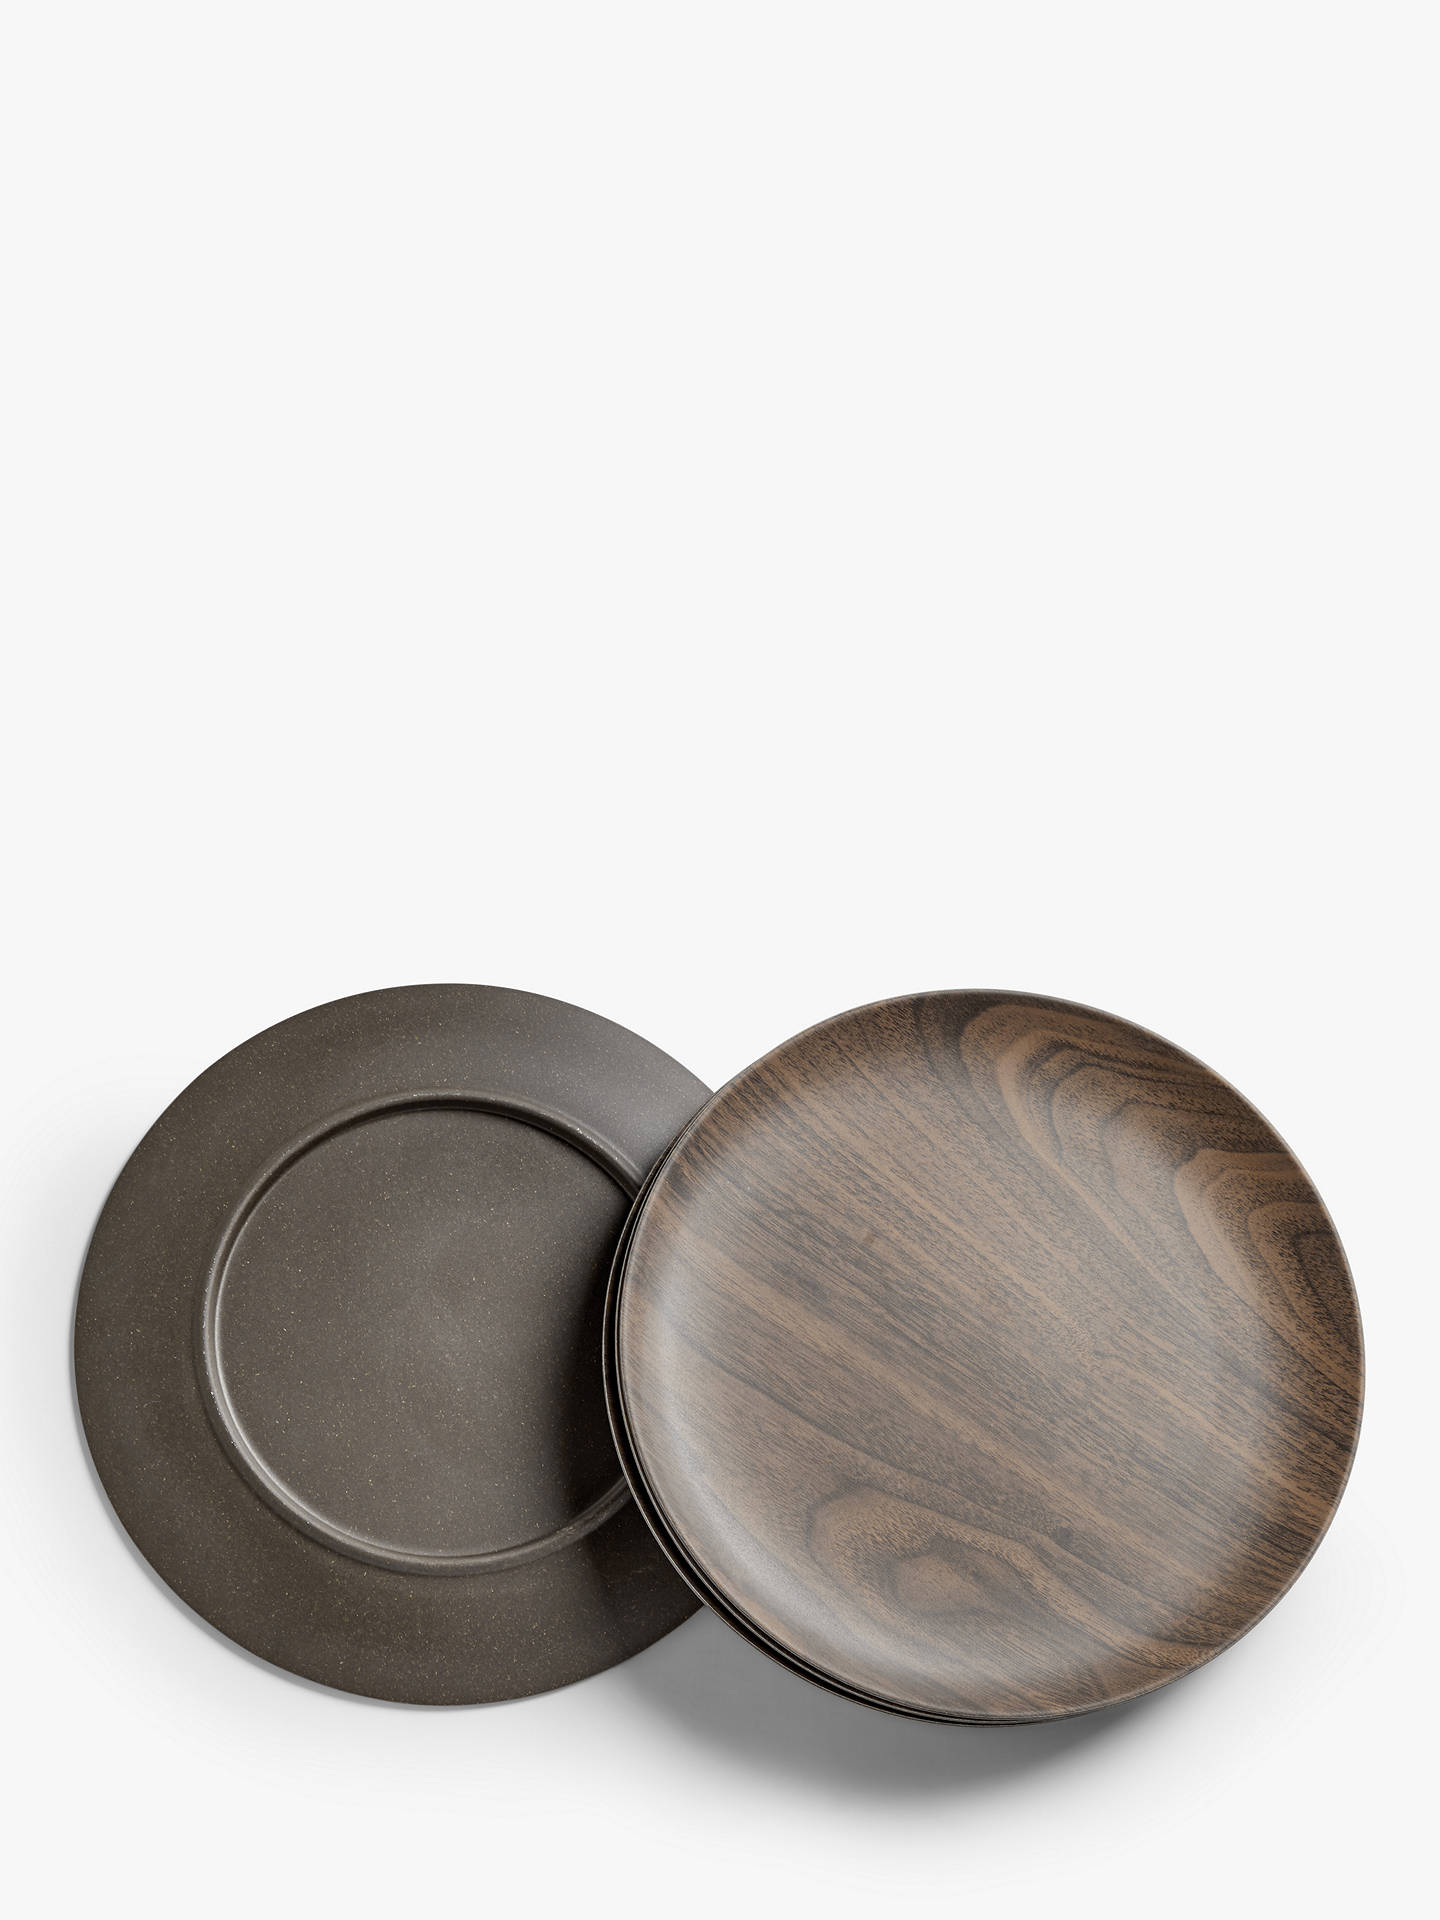 Buy John Lewis & Partners Bamboo Wood-Effect Side Plates, Set of 4, 20cm, Natural Online at johnlewis.com